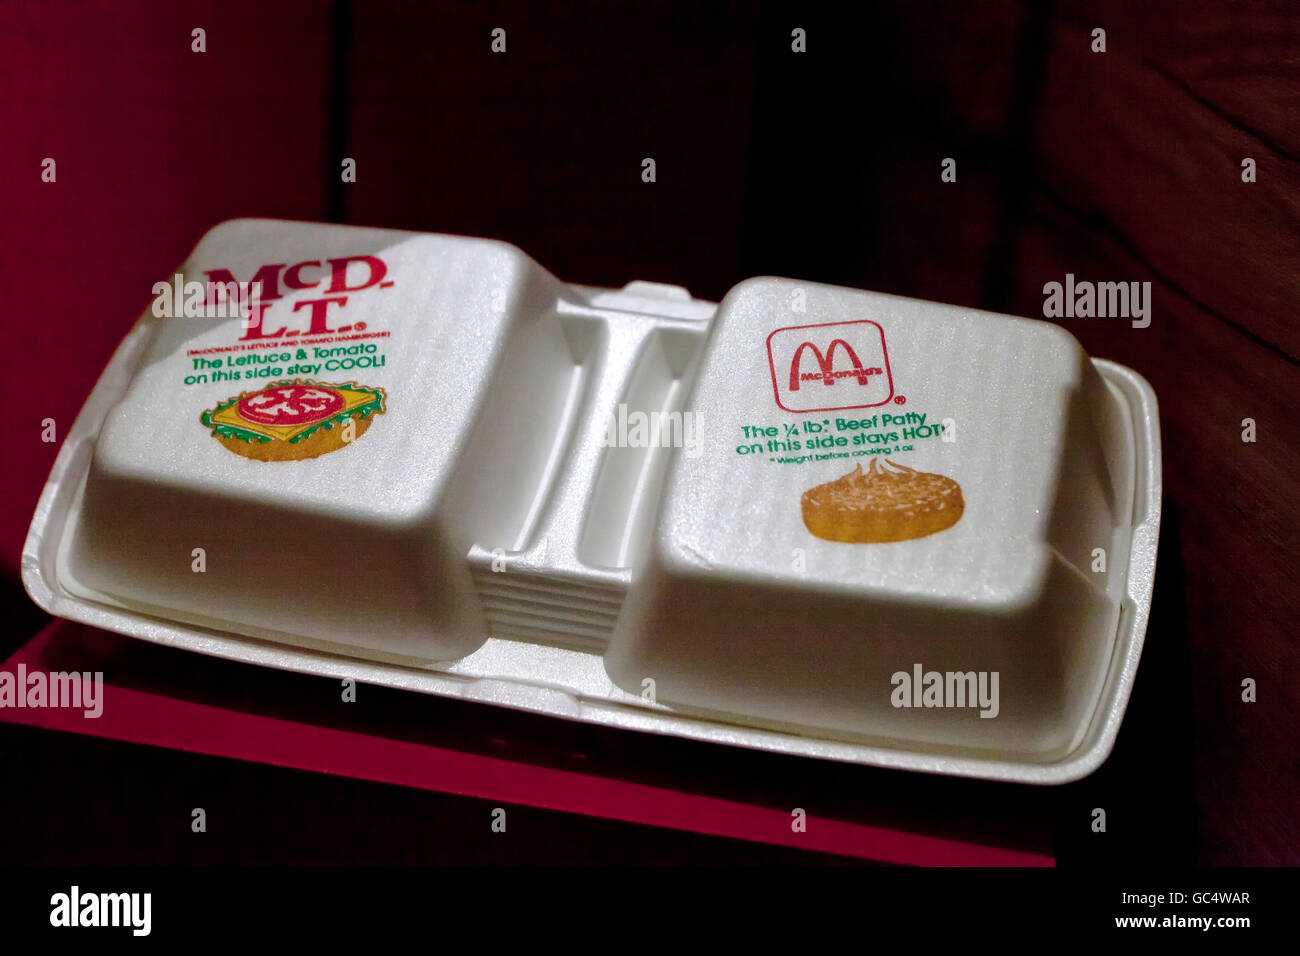 Vintage McDonald's polystyrene foam clamshell sandwich containers - USA - Stock Image